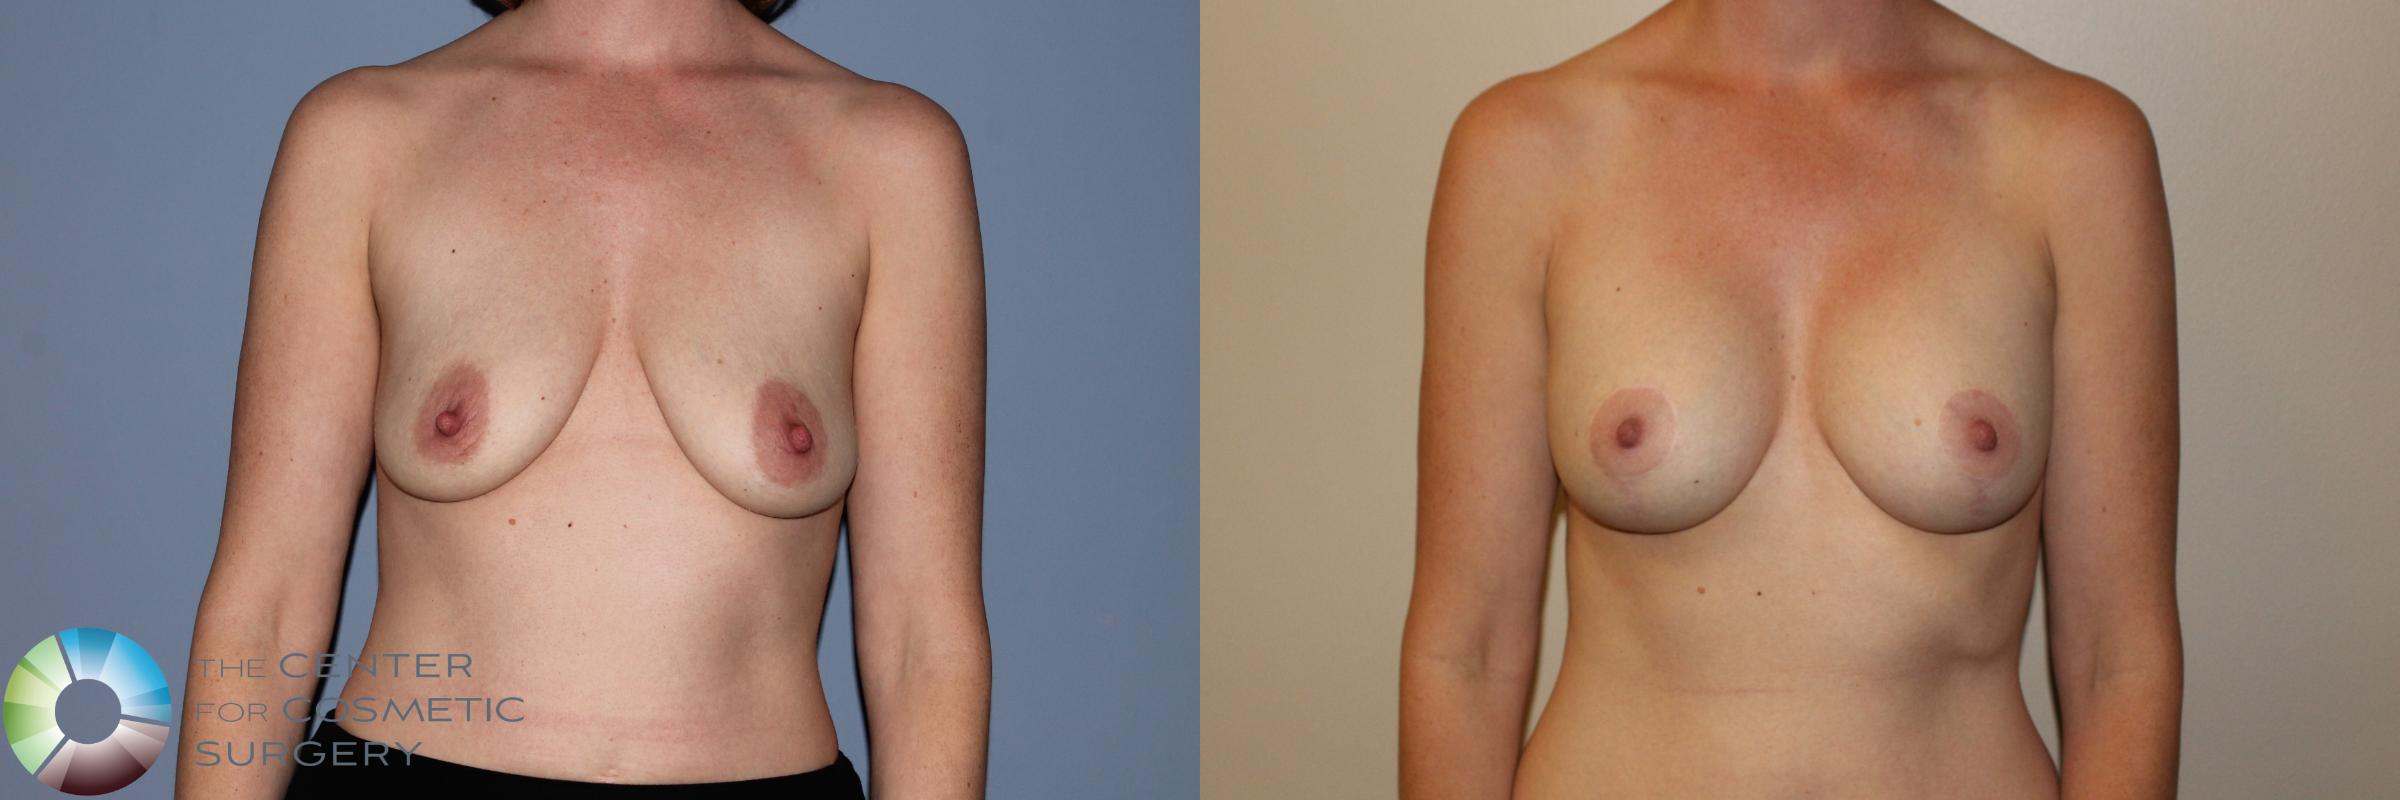 Breast Lift Case 11499 Before & After Front | Golden, CO | The Center for Cosmetic Surgery